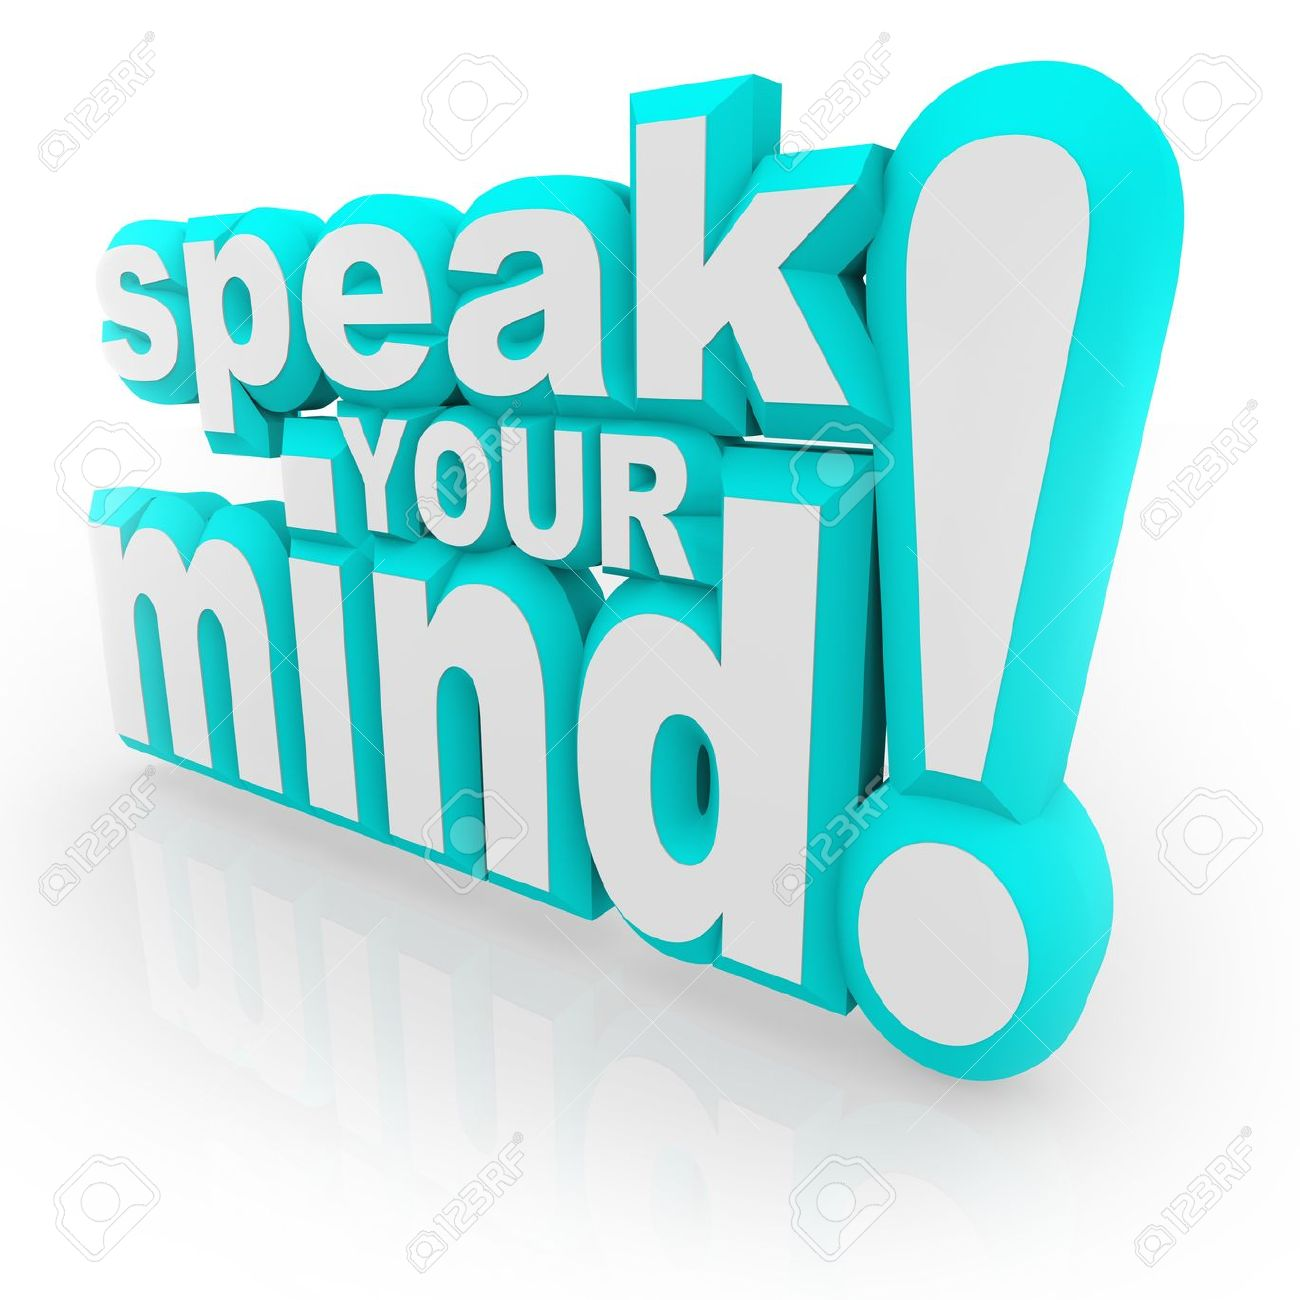 The words Speak Your Mind in 3d letters encouraging you to provide feedback, opinions, thoughts, viewpoints, answers and judgements Stock Photo - 16066255